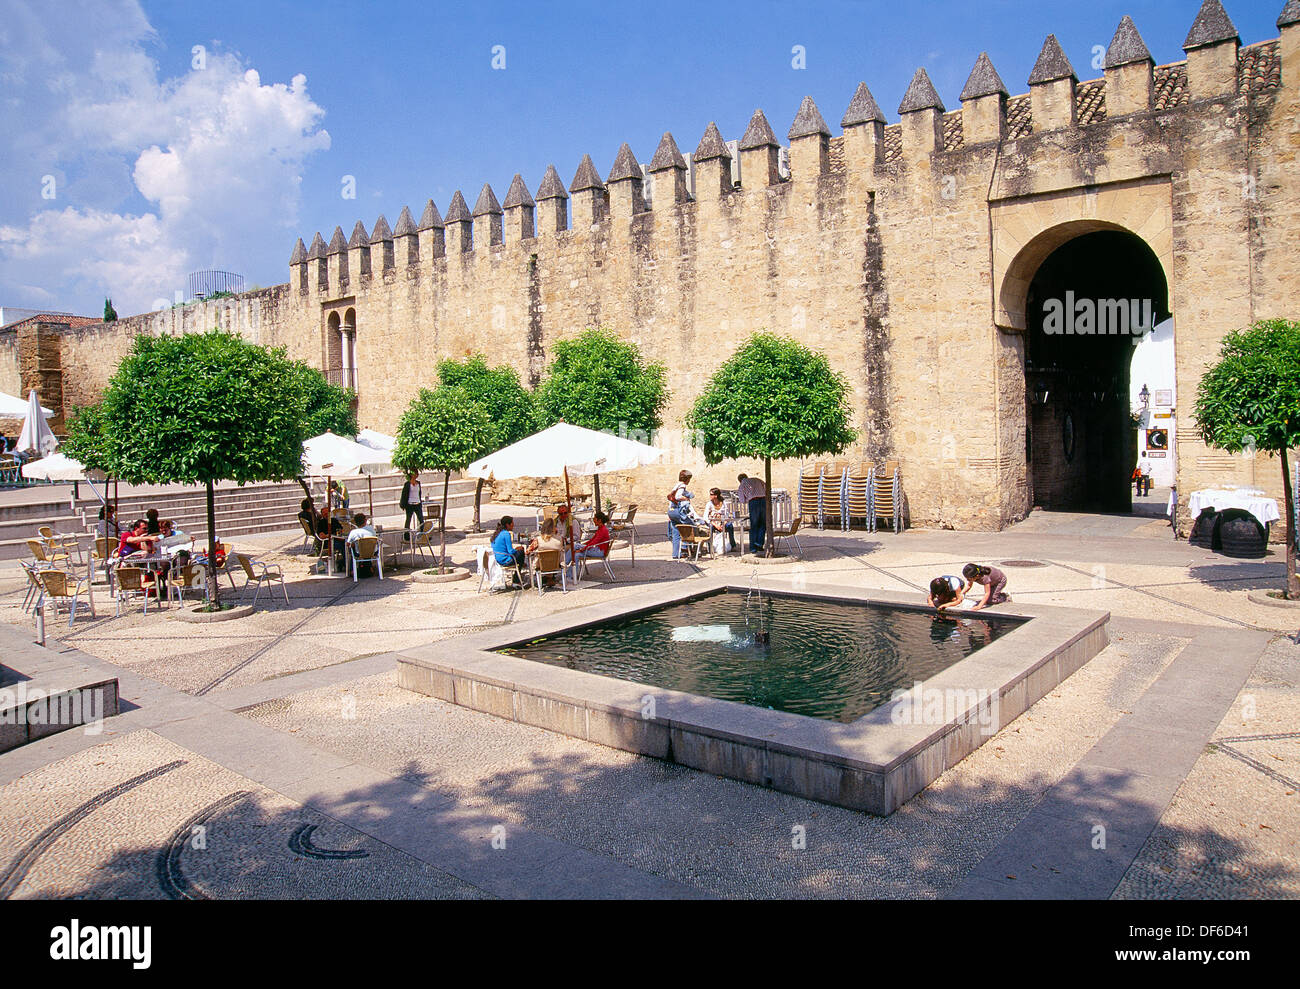 Terrace nearby the city wall. Cordoba, Andalucia, Spain. - Stock Image